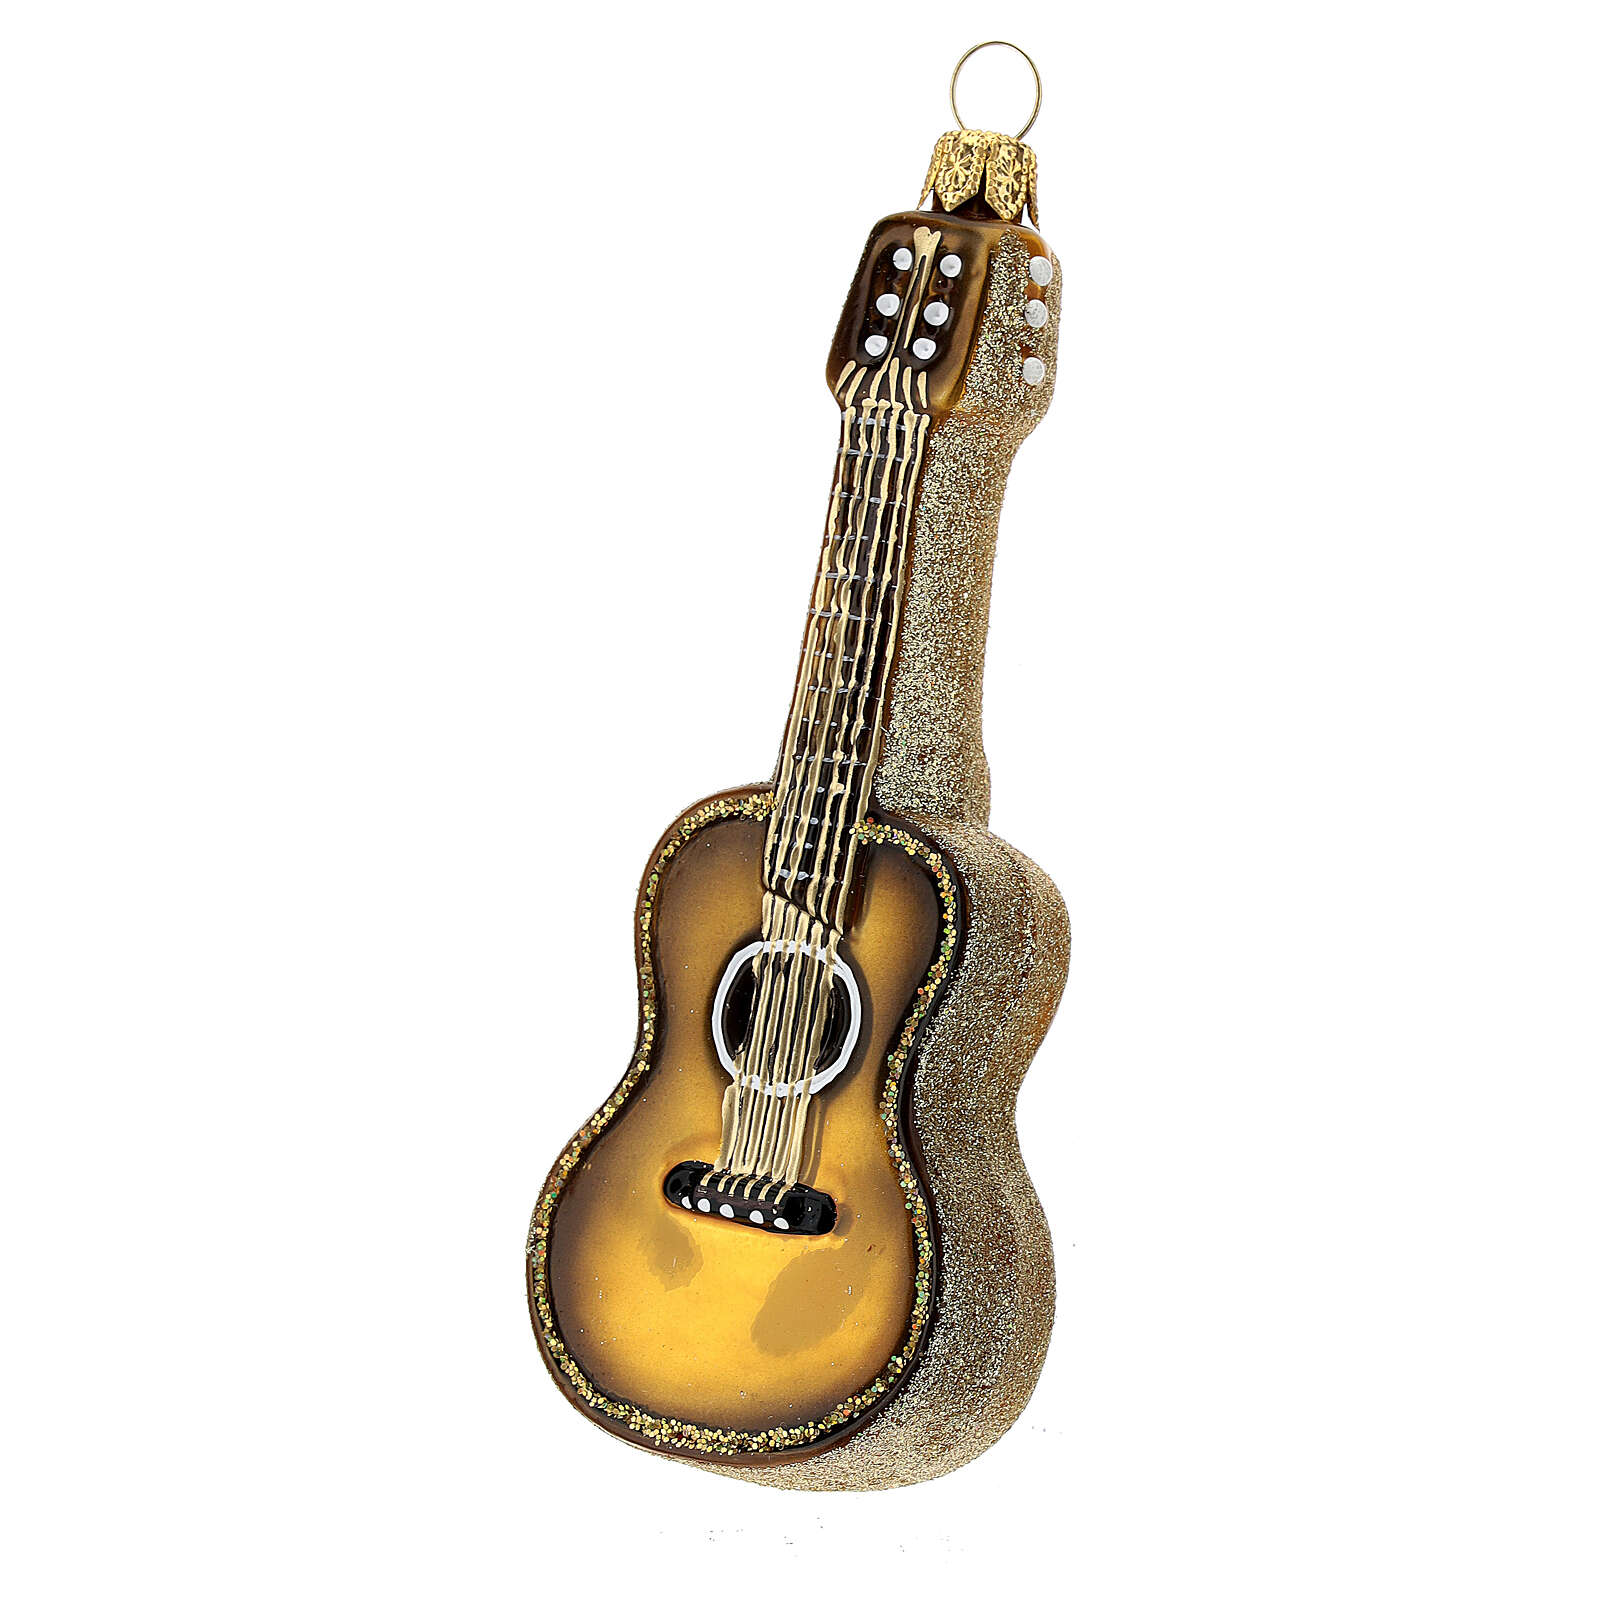 Blown glass Christmas ornament, acoustic guitar 4